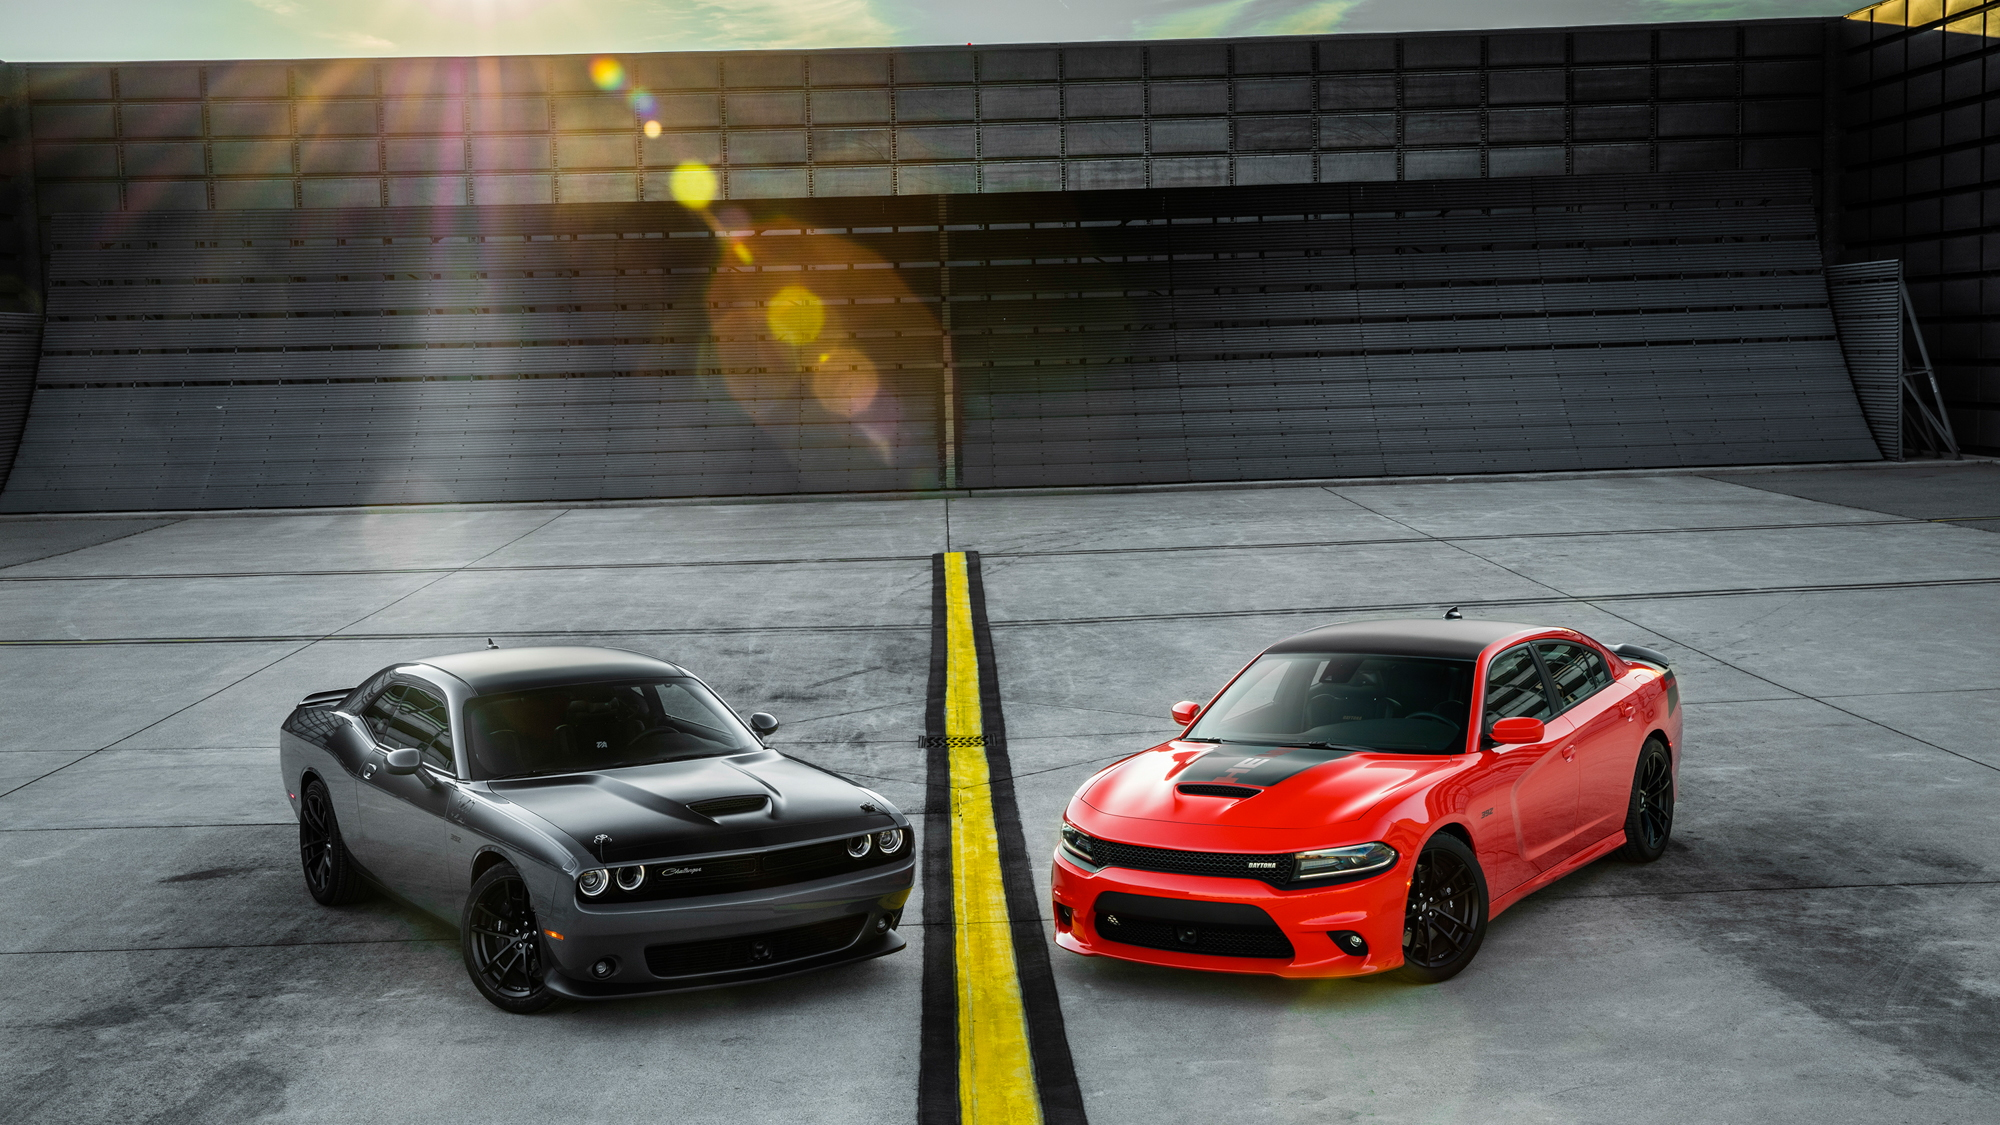 Dodge shows off its updated 2017 Challenger and Charger lineup